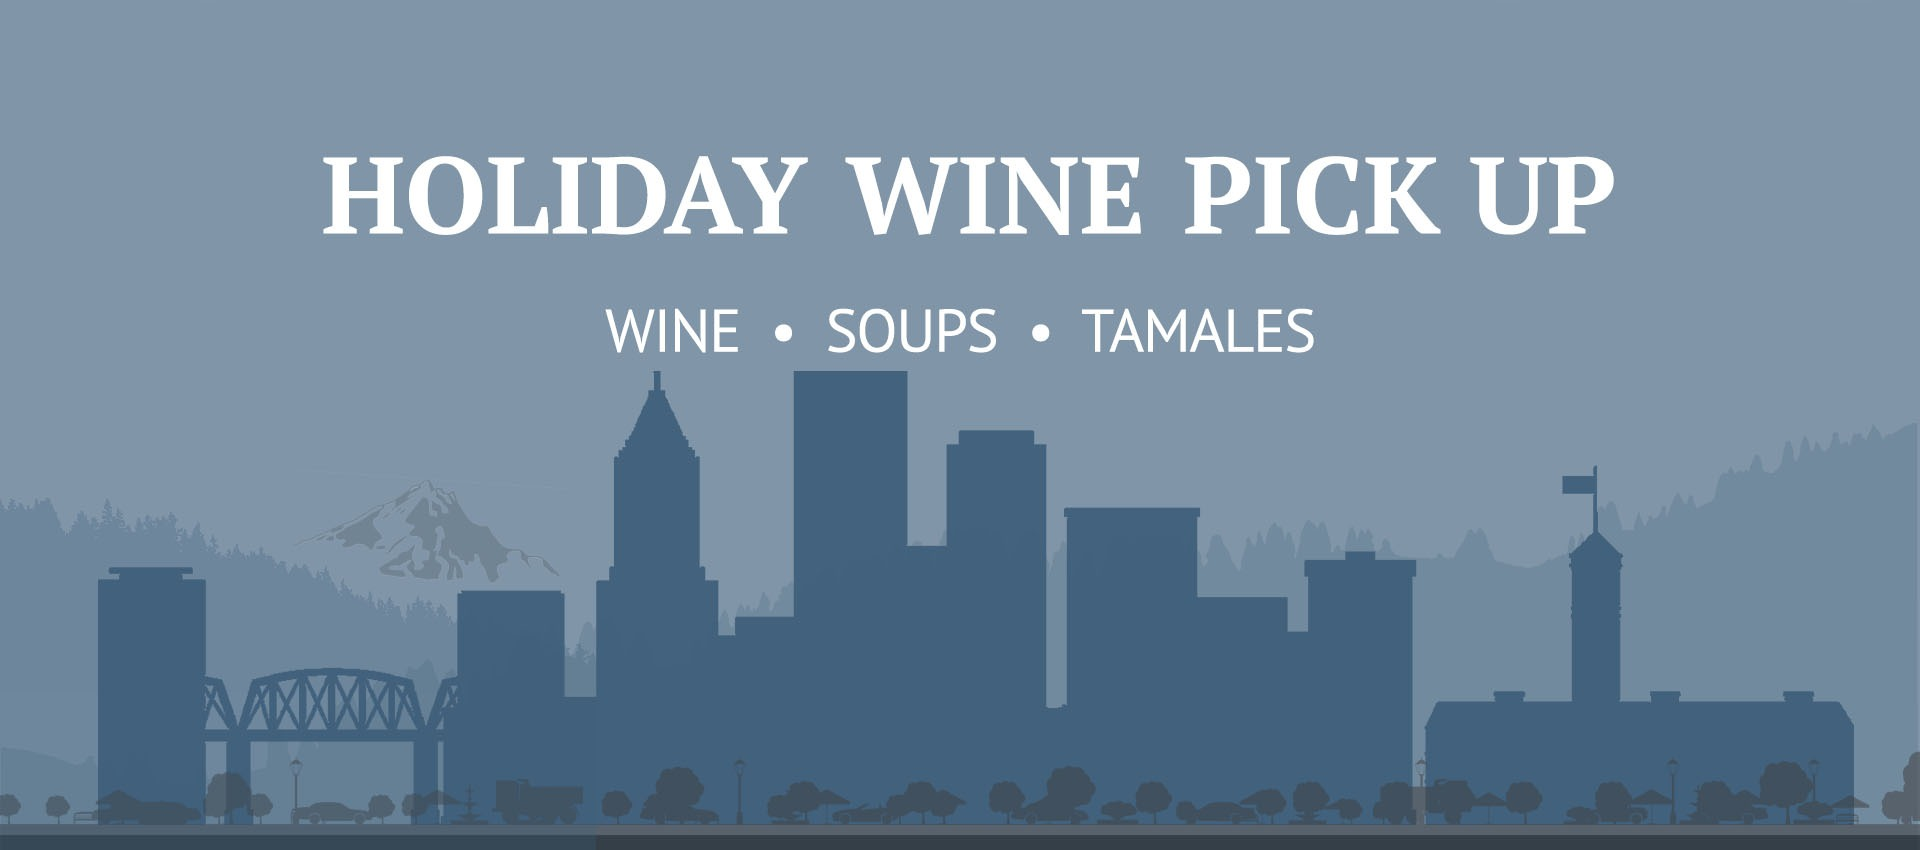 Celebrate the winter solstice in the city and Fairsing Vineyard to pick up wine, soup, and tamales